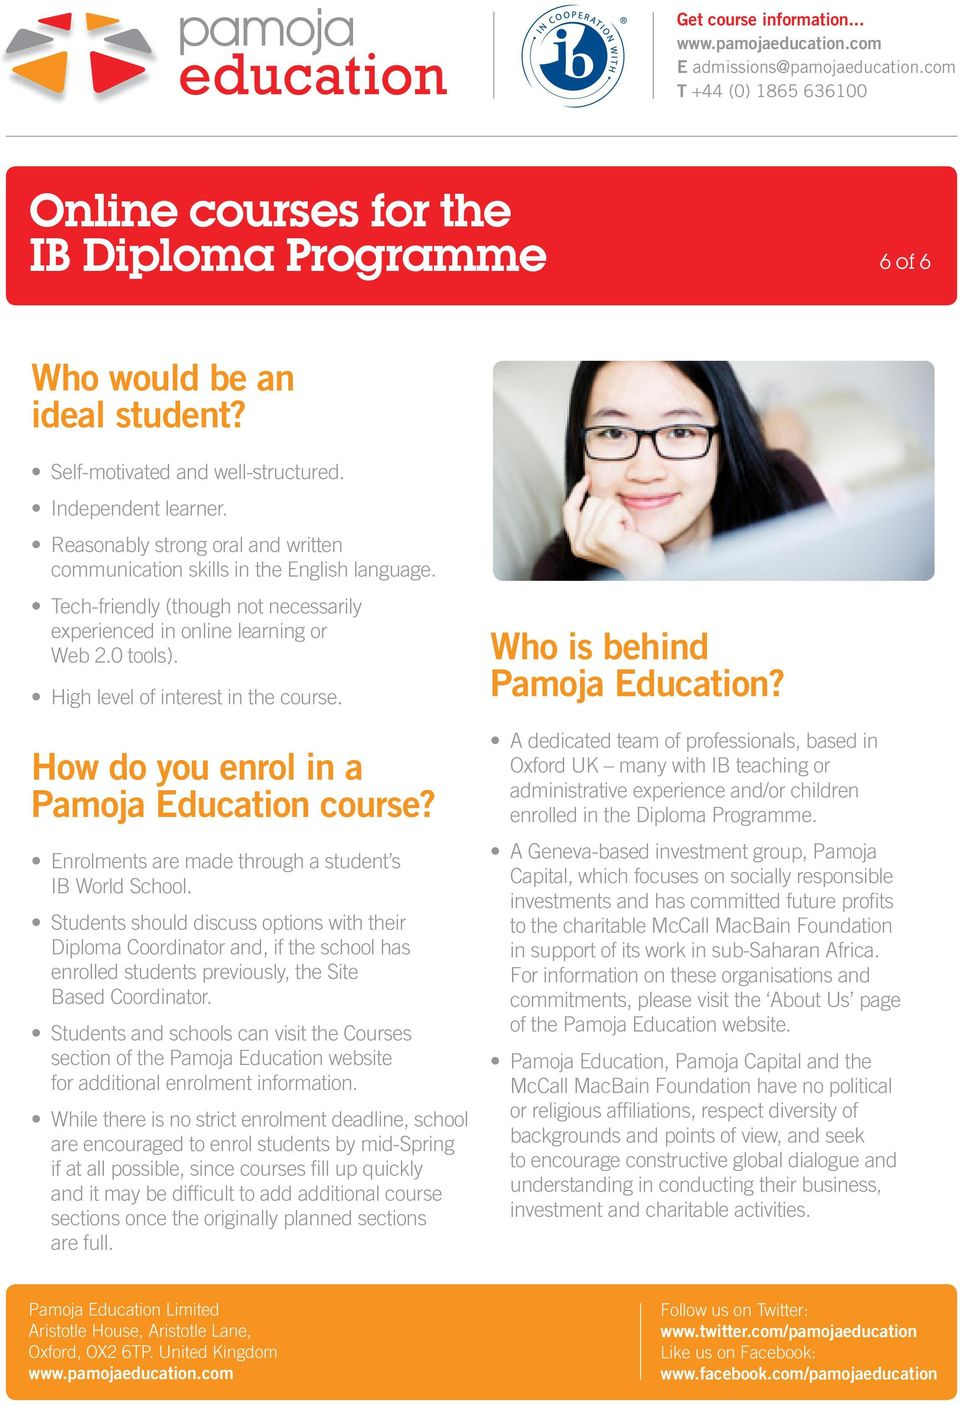 Enrolments are made through a student s IB World School. Students should discuss options with their Diploma Coordinator and, if the school has enrolled students previously, the Site Based Coordinator.